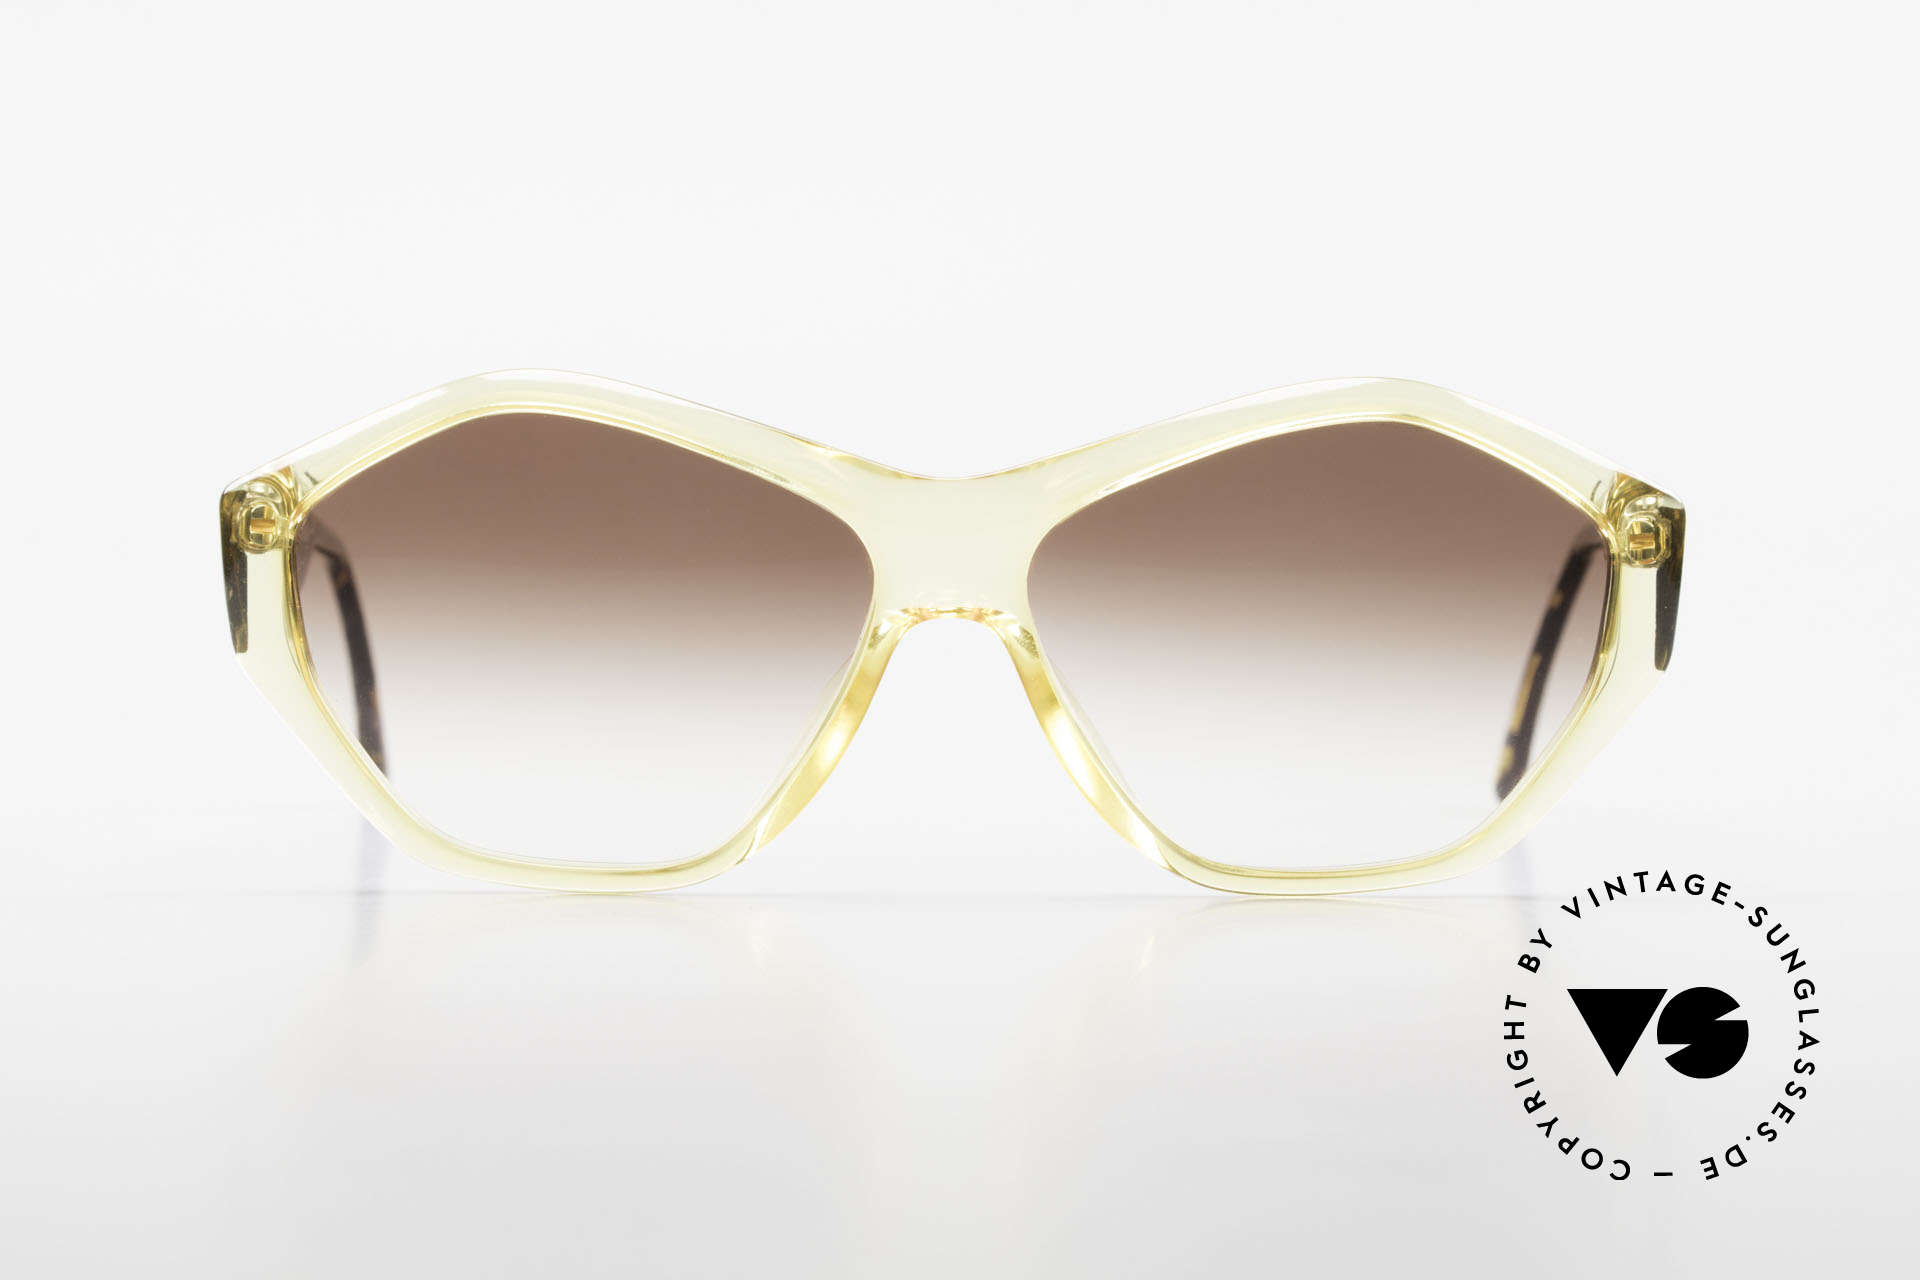 Paloma Picasso 1463 Optyl Sunglasses 90's Ladies, spectacular design meets a brilliant frame pattern, Made for Women